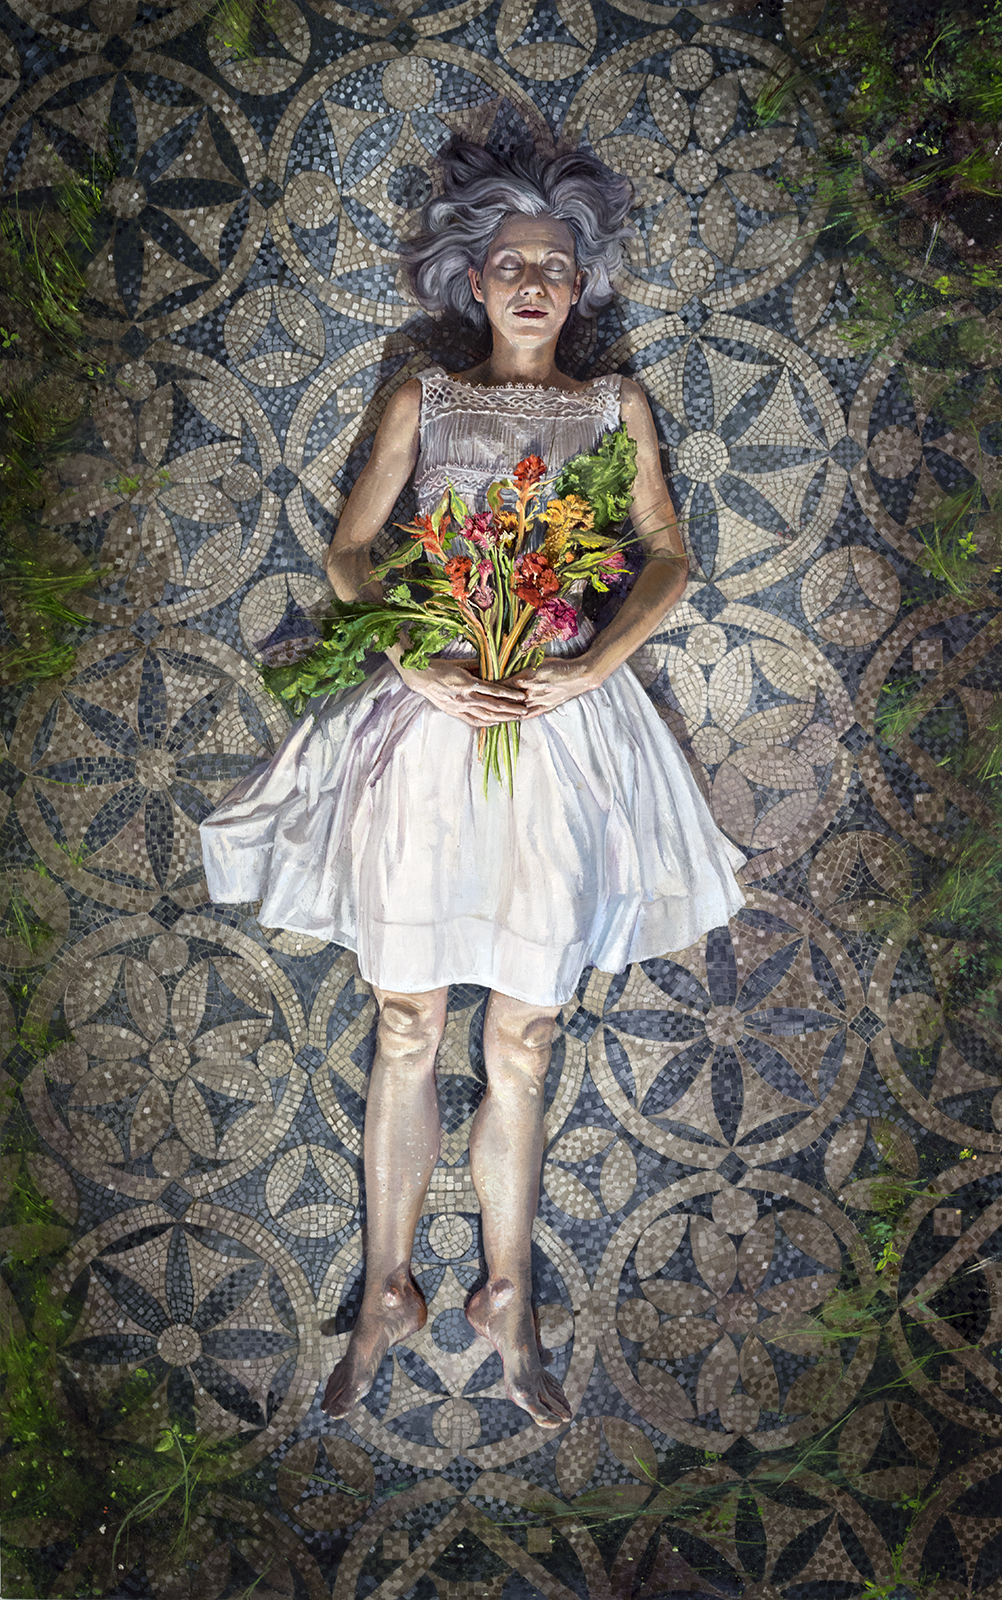 Melanie Vote Place Like Home oil on linen painting part of the show Overgrowth at Hionas Gallery New York City